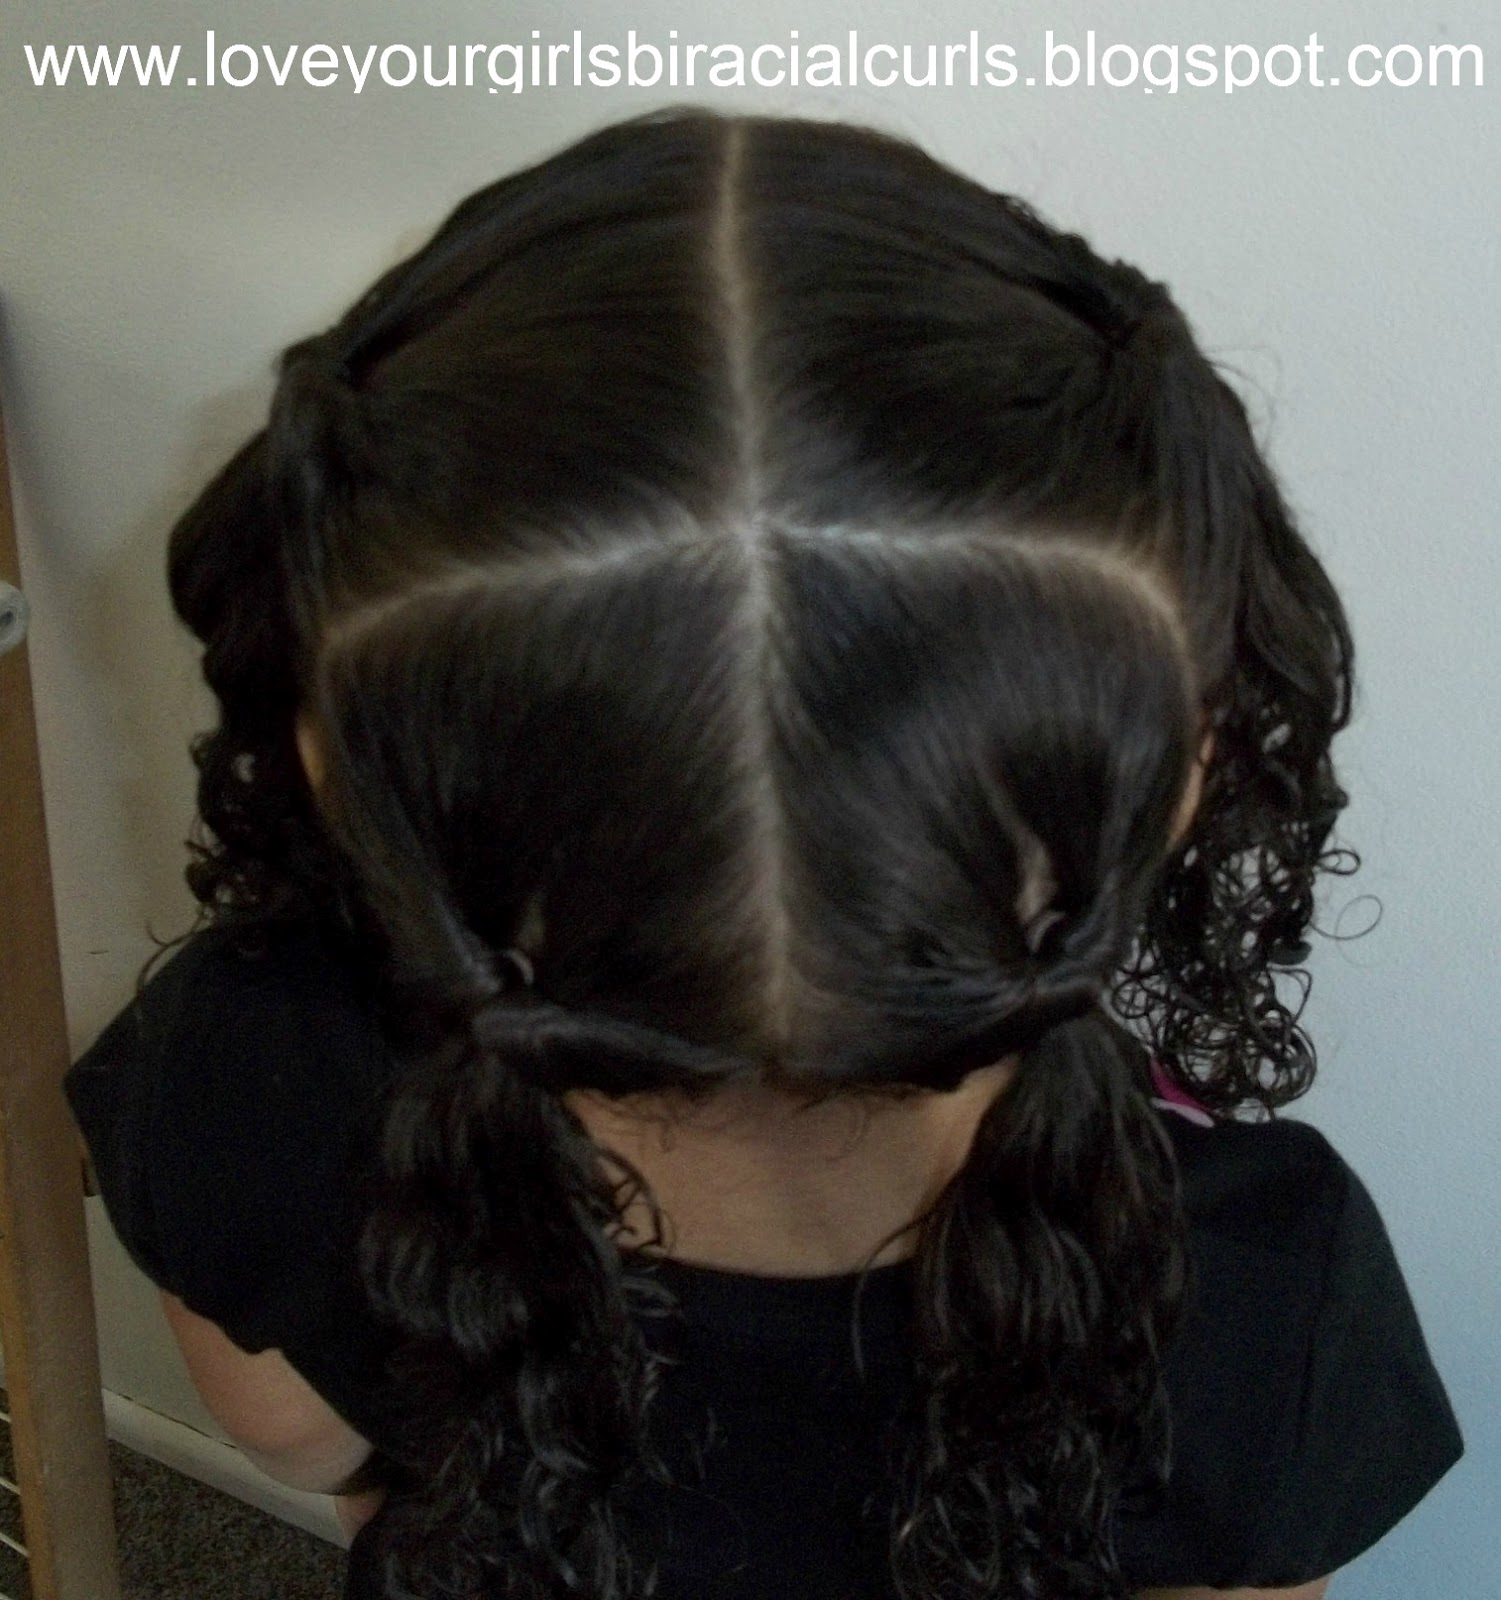 Love Your Girls Biracial Curls Topsy Tail Created